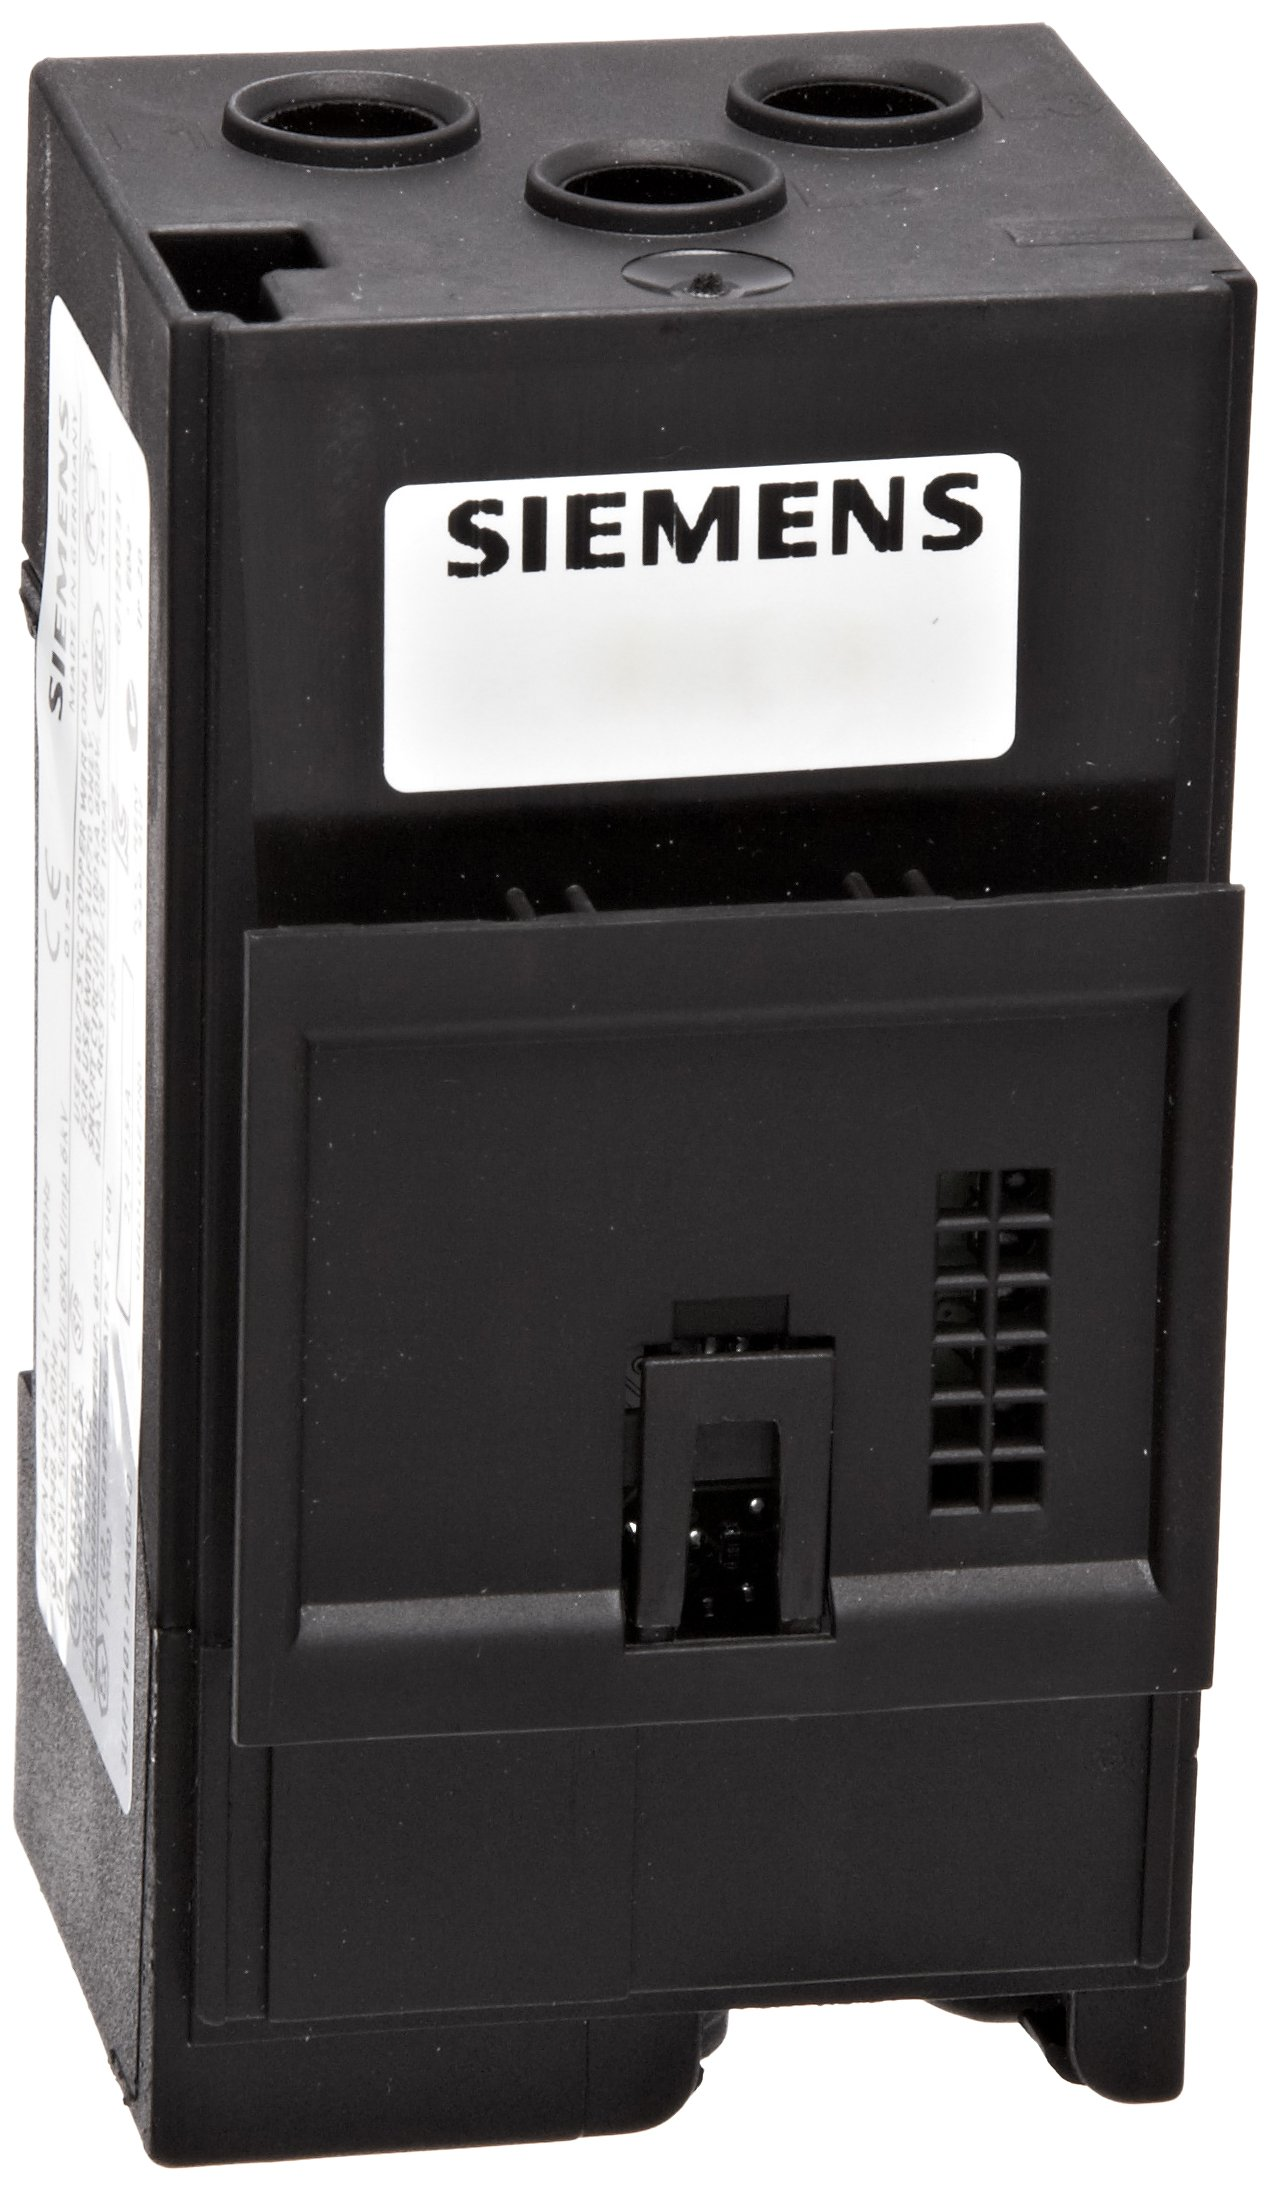 Siemens 3UF7 101-1AA00-0 Motor Control Device Current Measuring Module, Straight Through Transformers, 45mm Width, 2.4-25A Current Setting